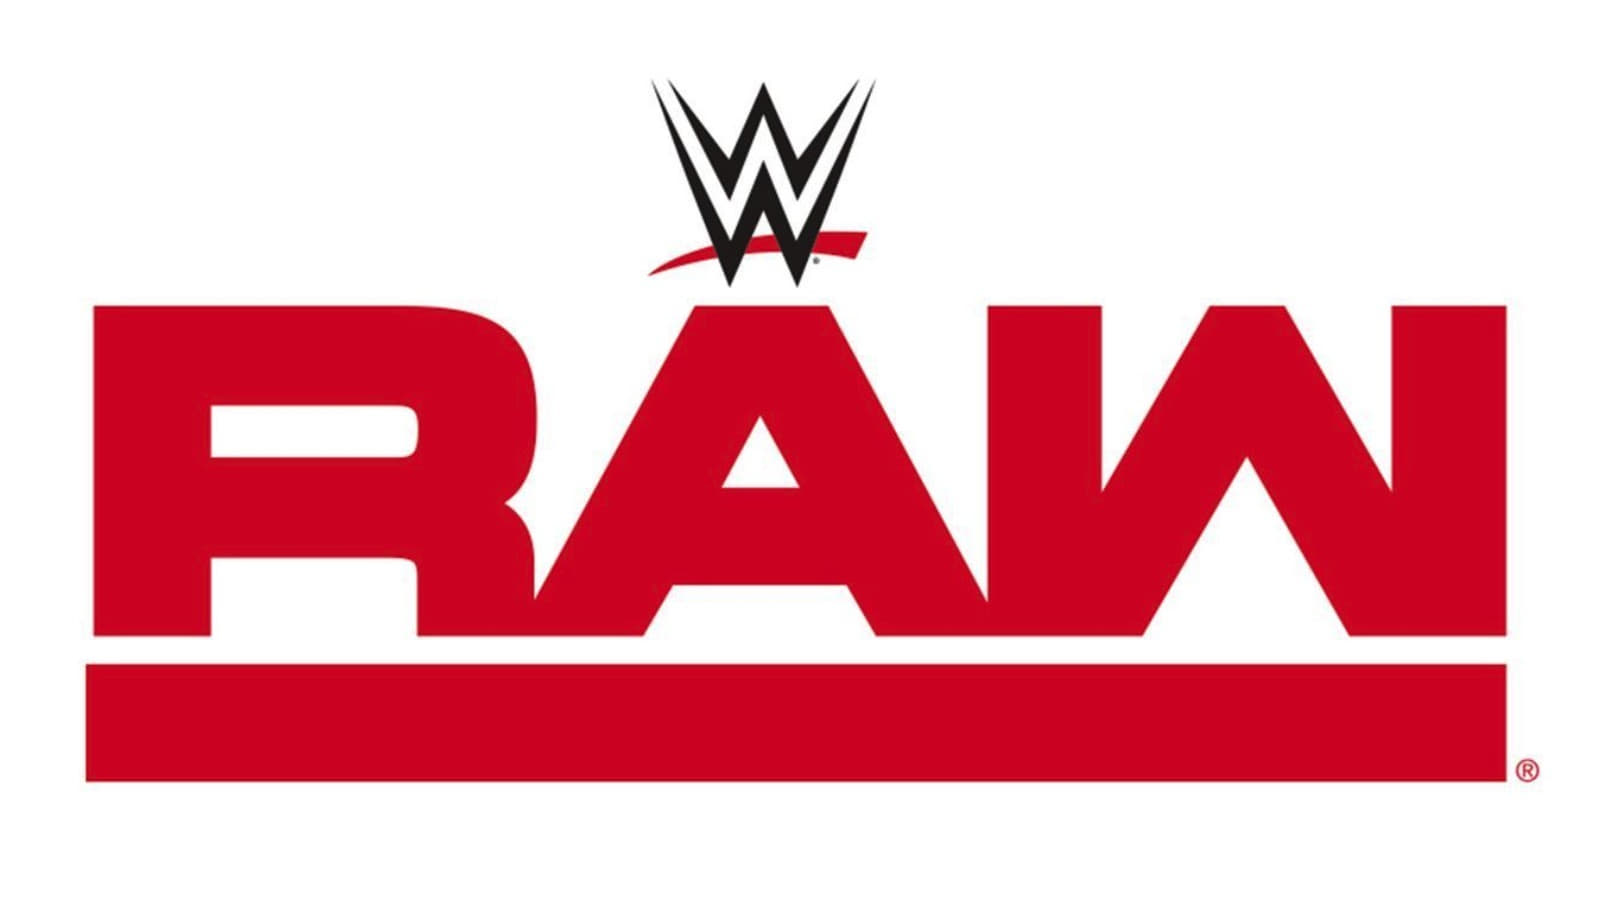 WWE Raw - Season 19 Episode 30 : The Champs are Here